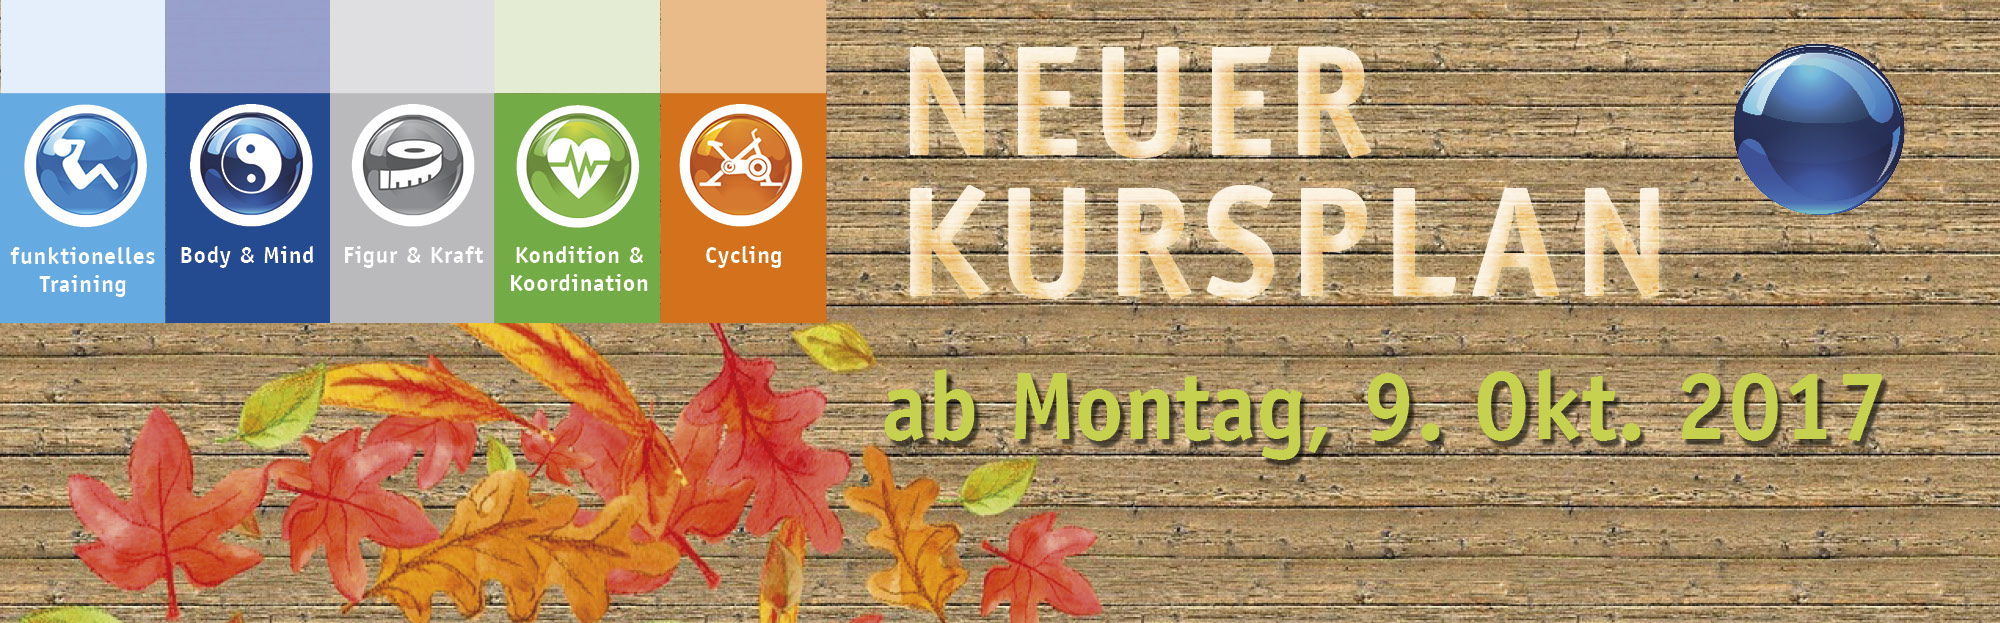 Neuer Kursplan ab 9.10.2017 Background